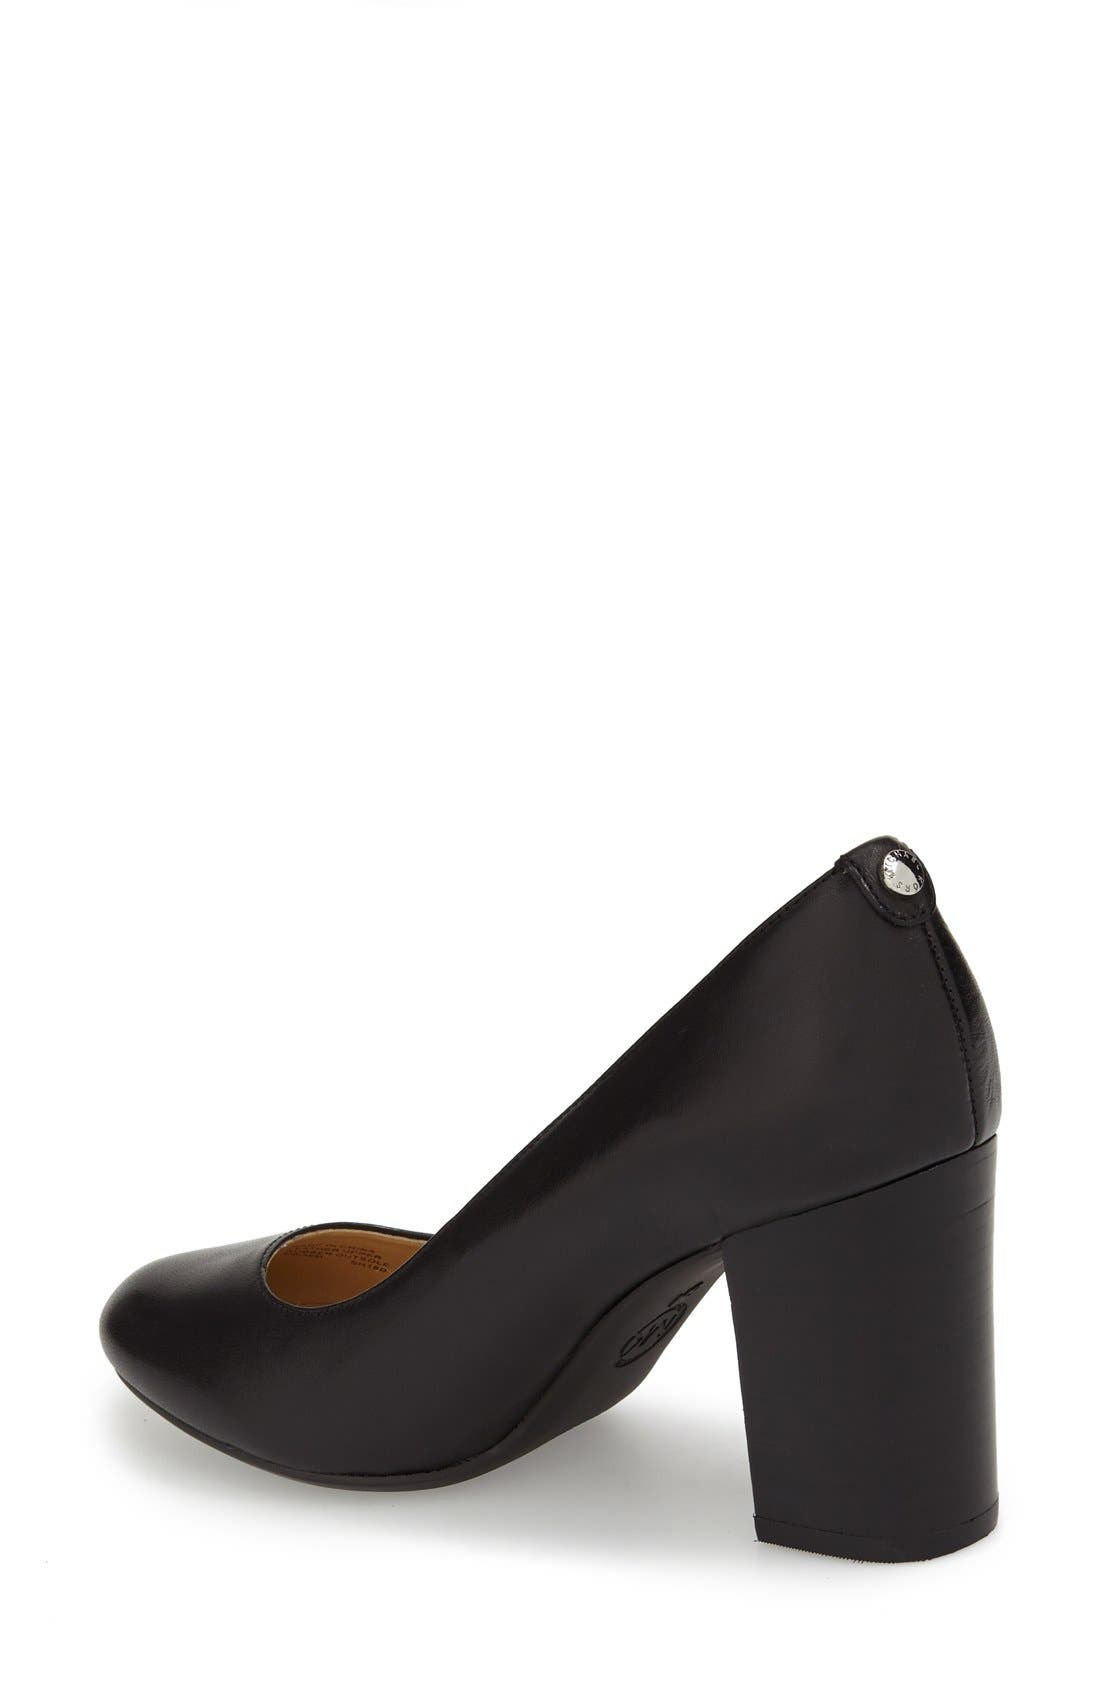 Alternate Image 2  - MICHAEL Michael Kors 'Lucy - Flex' Round Toe Pump (Women)